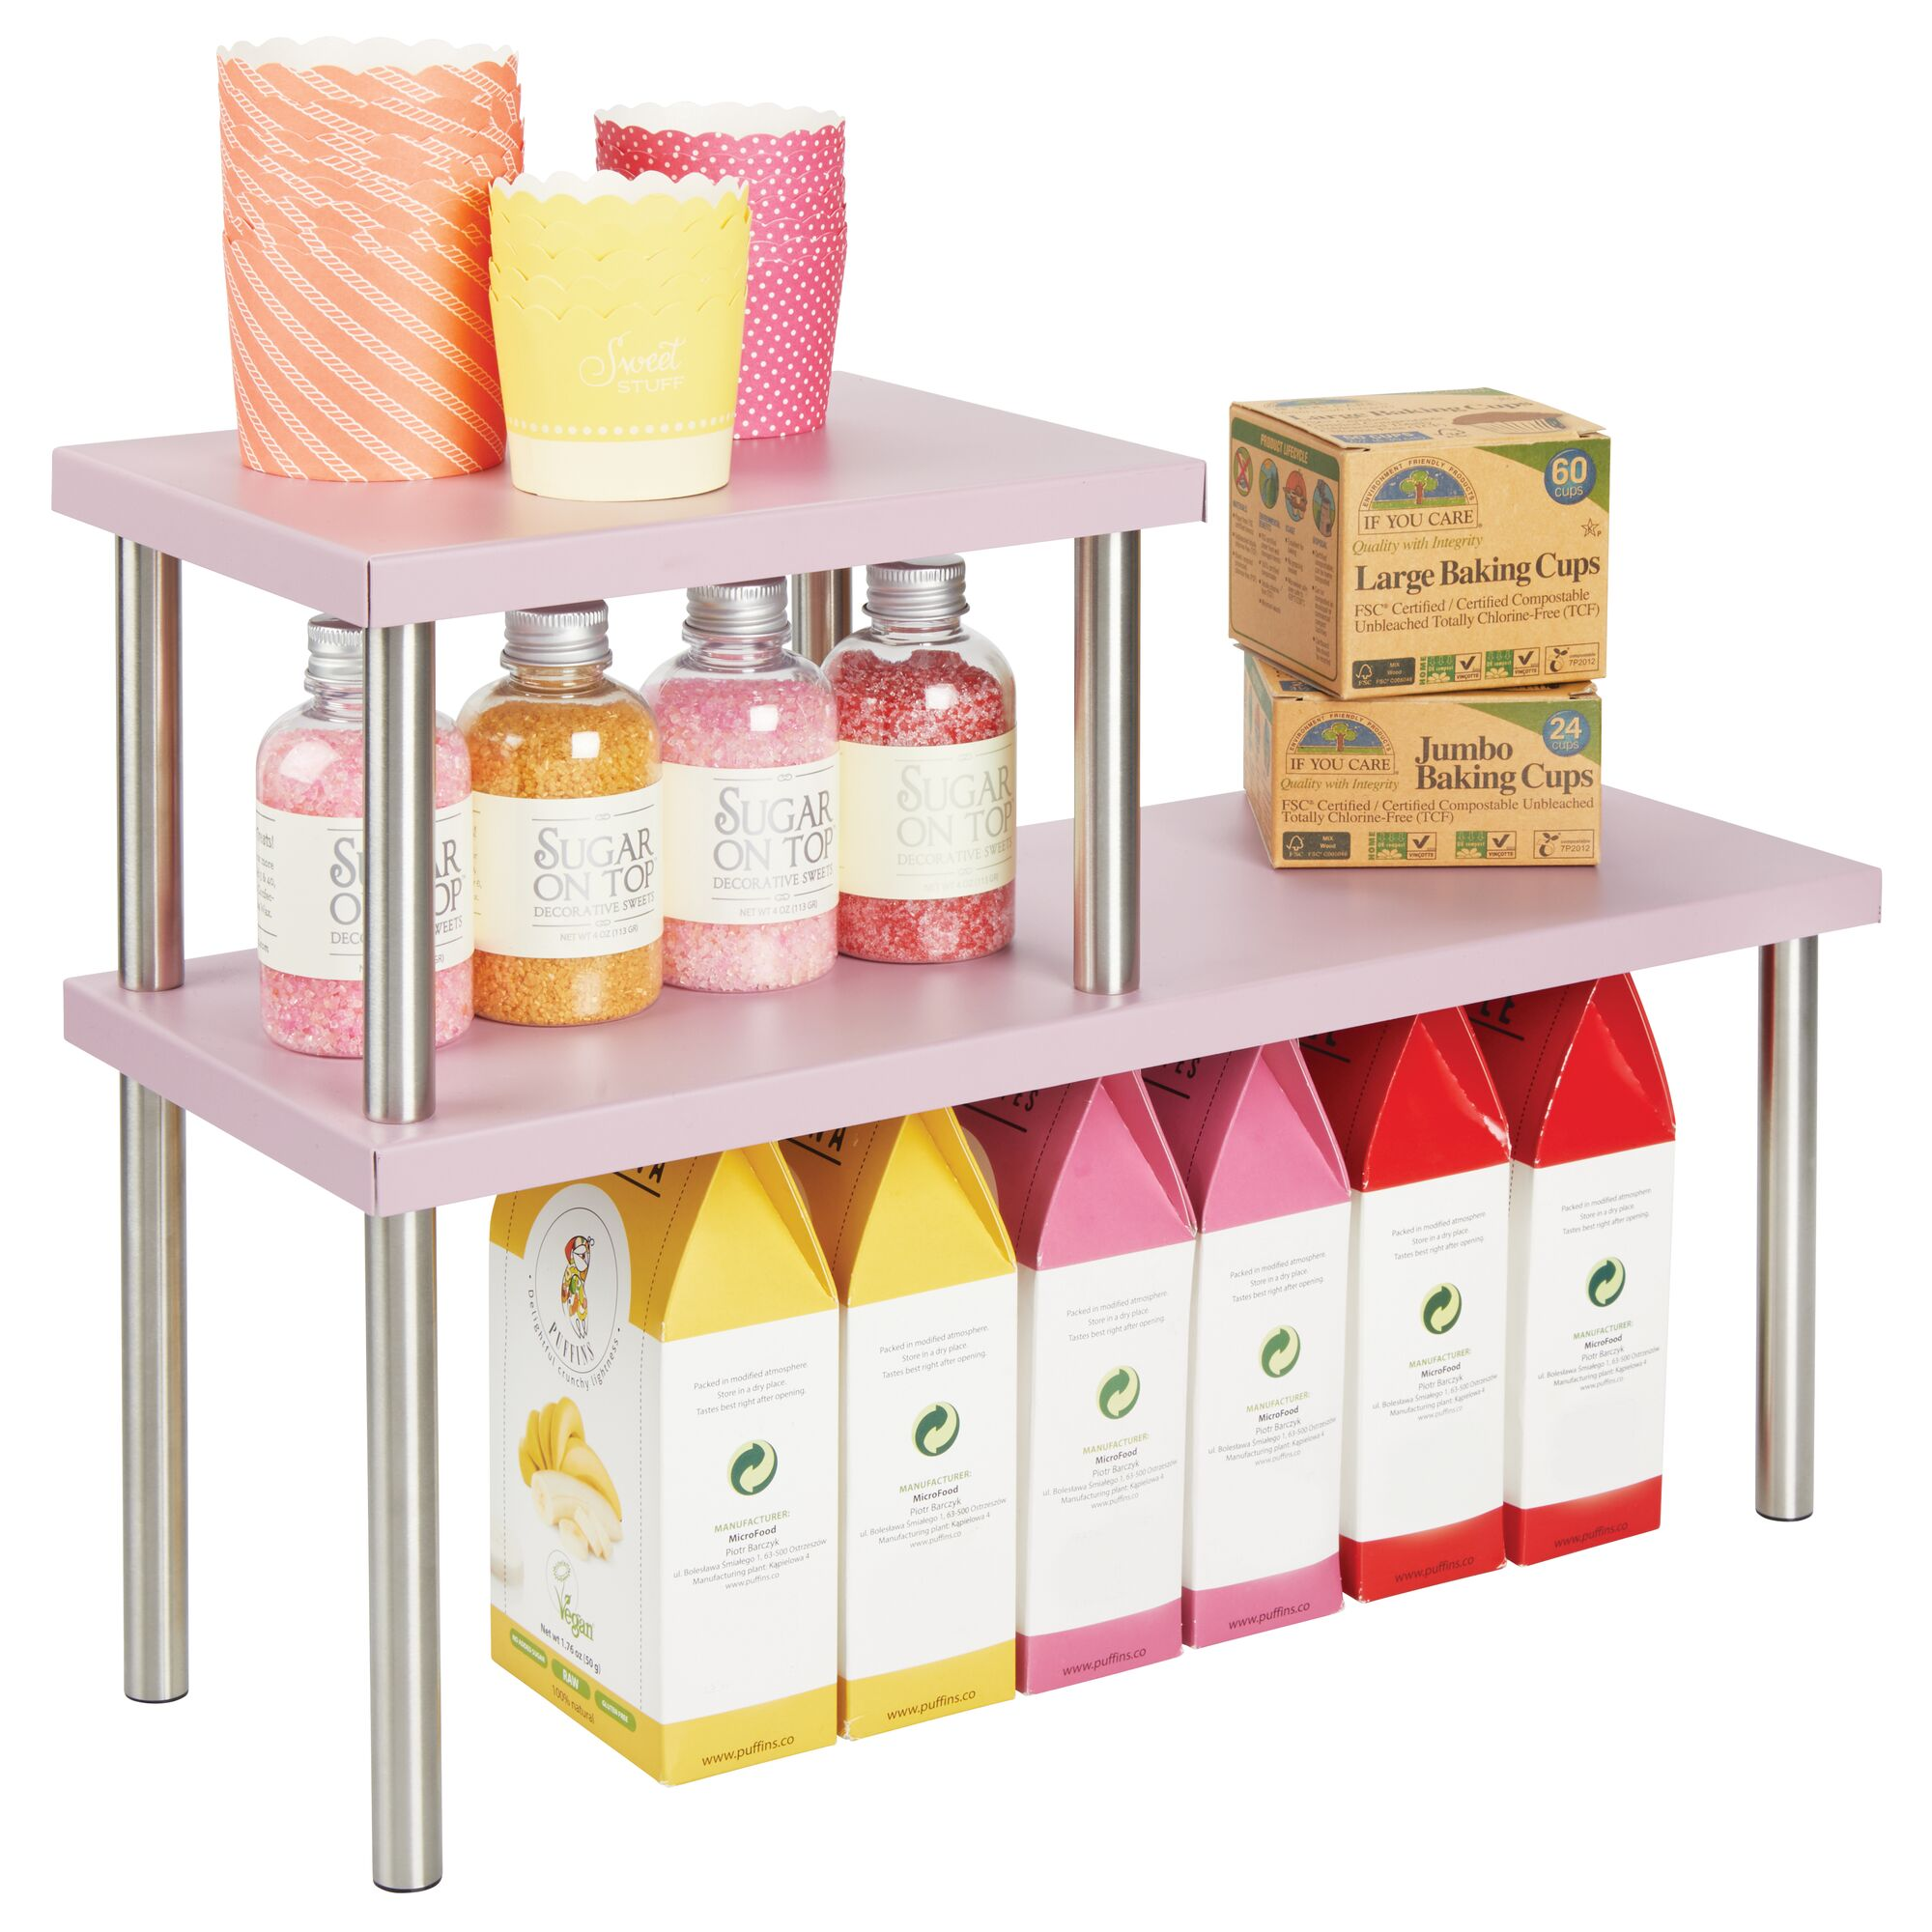 Details about mDesign Metal 3-Tier Storage Shelves for Kitchen Countertop,  Cabinet